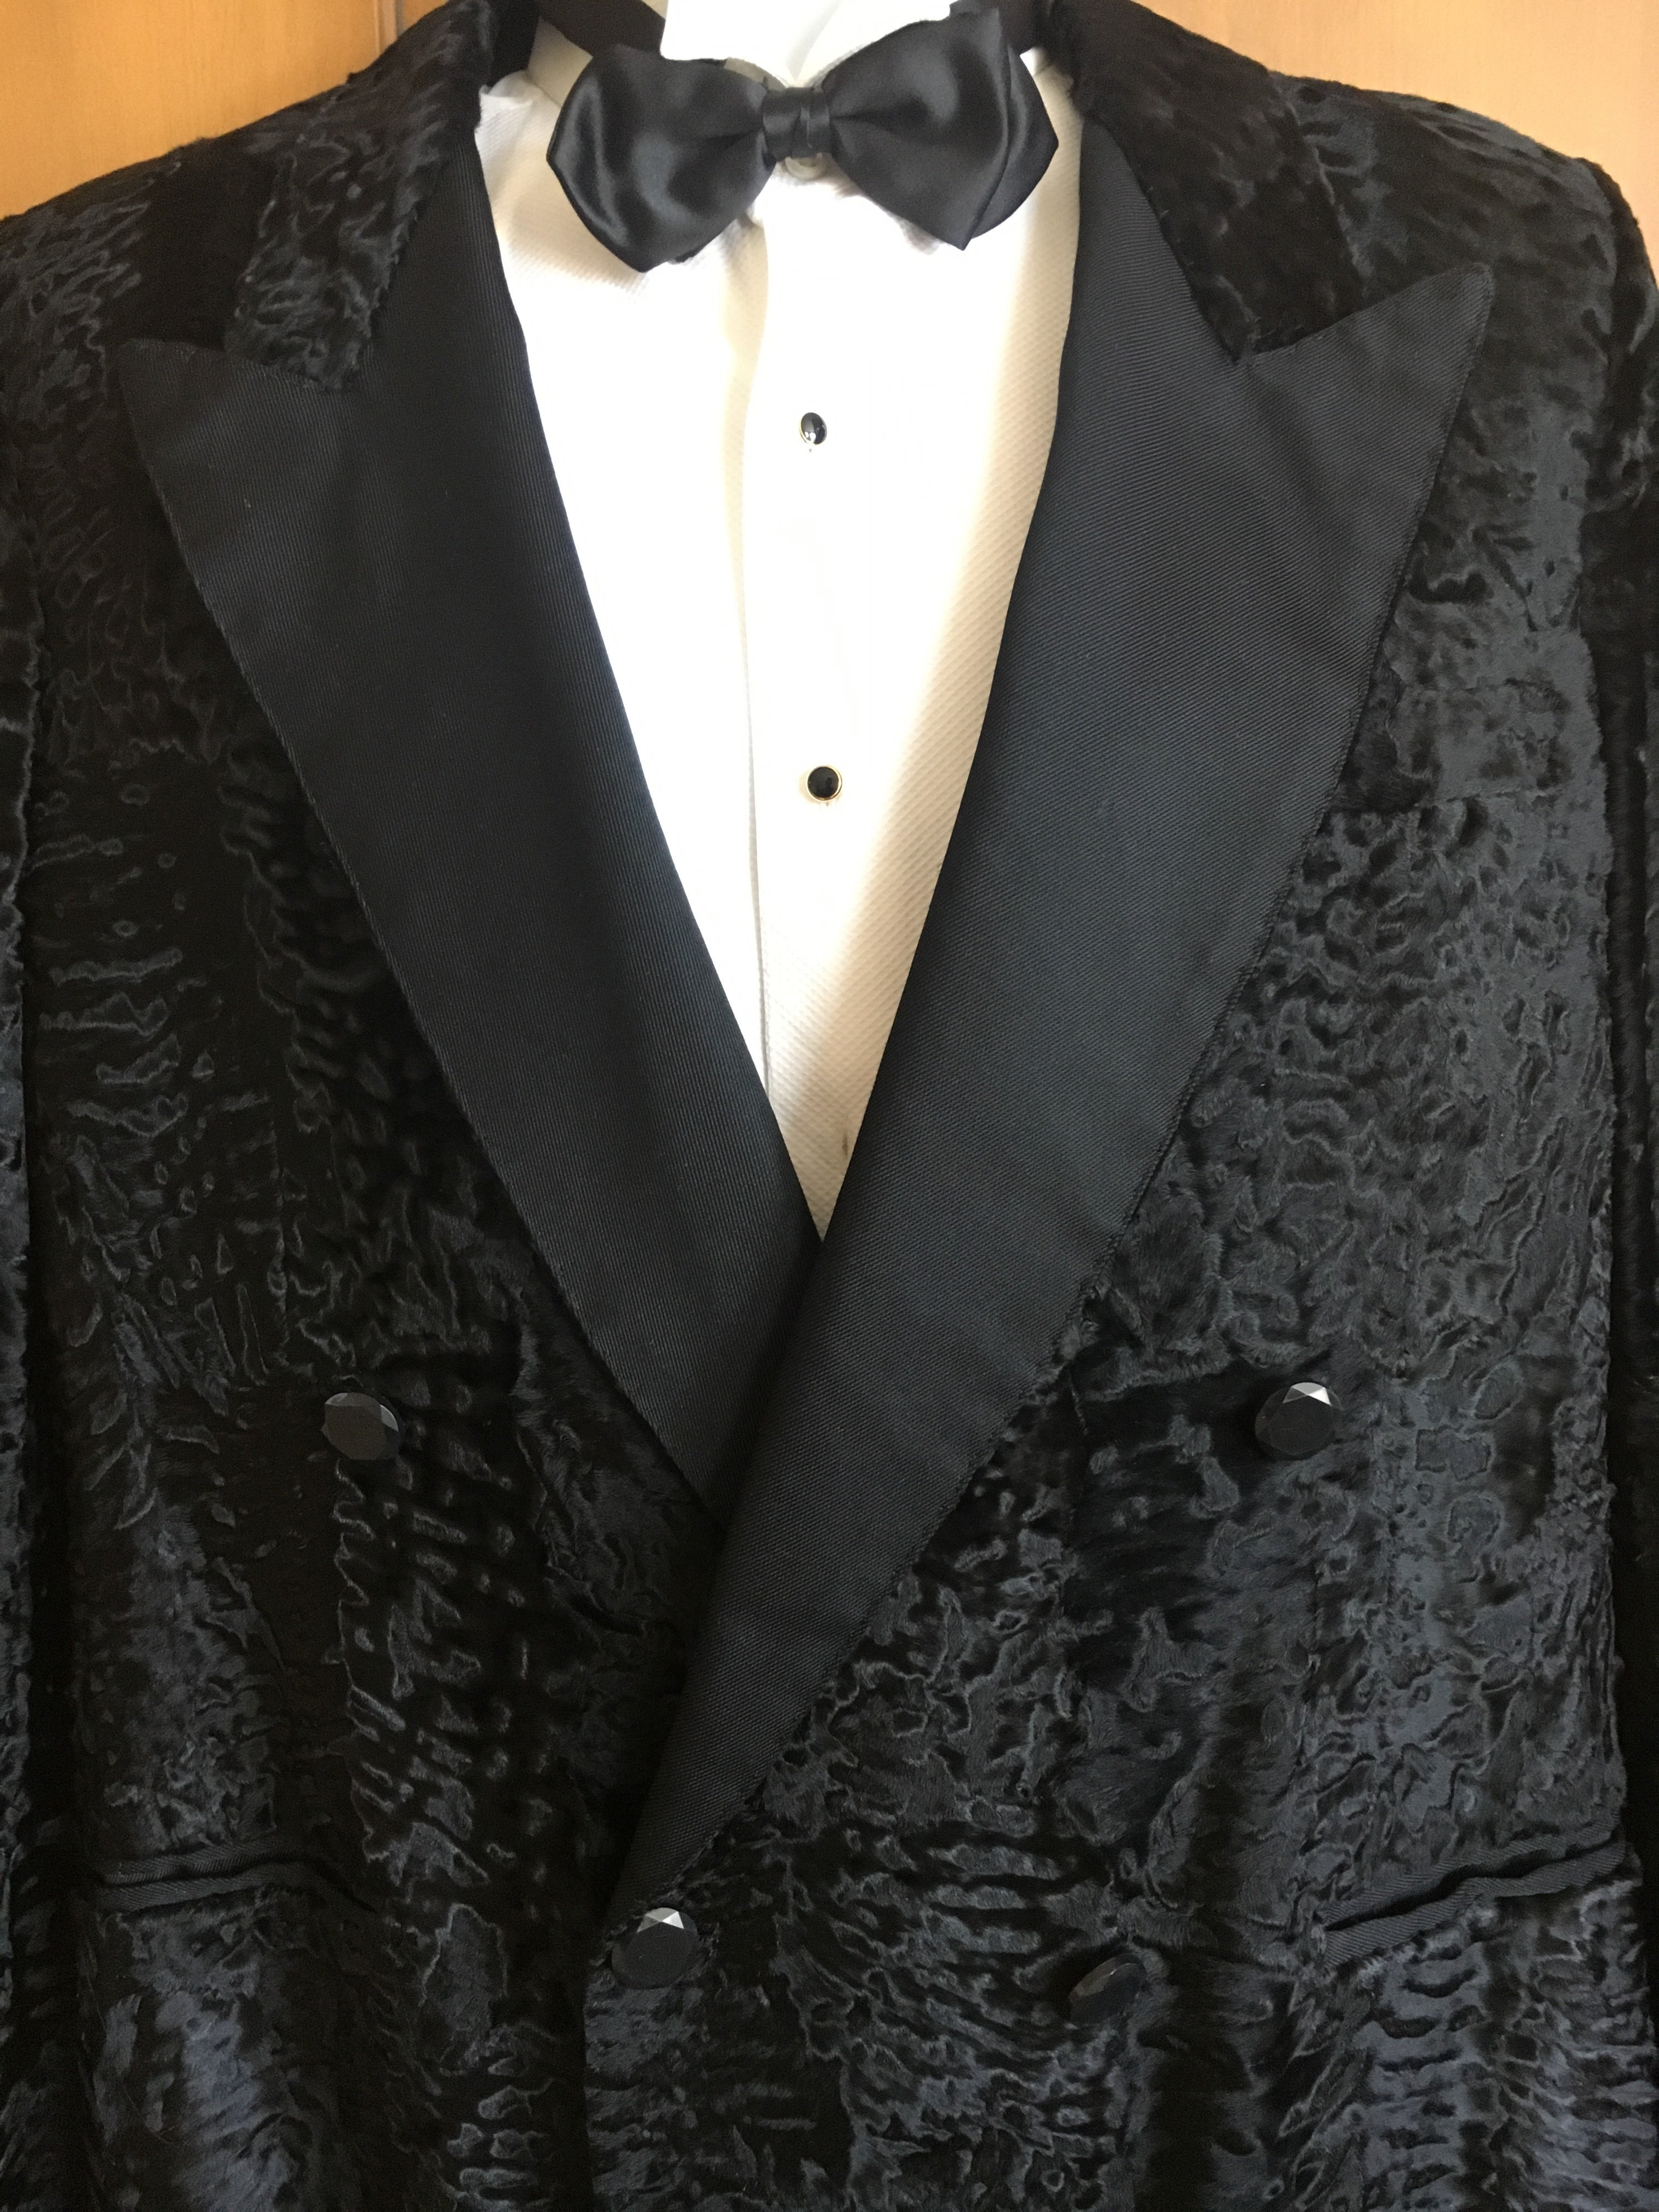 490869307ba YSL Tom Ford Black Broadtail Lamb Fur Tuxedo Jacket with Peak Silk Lapels  at 1stdibs